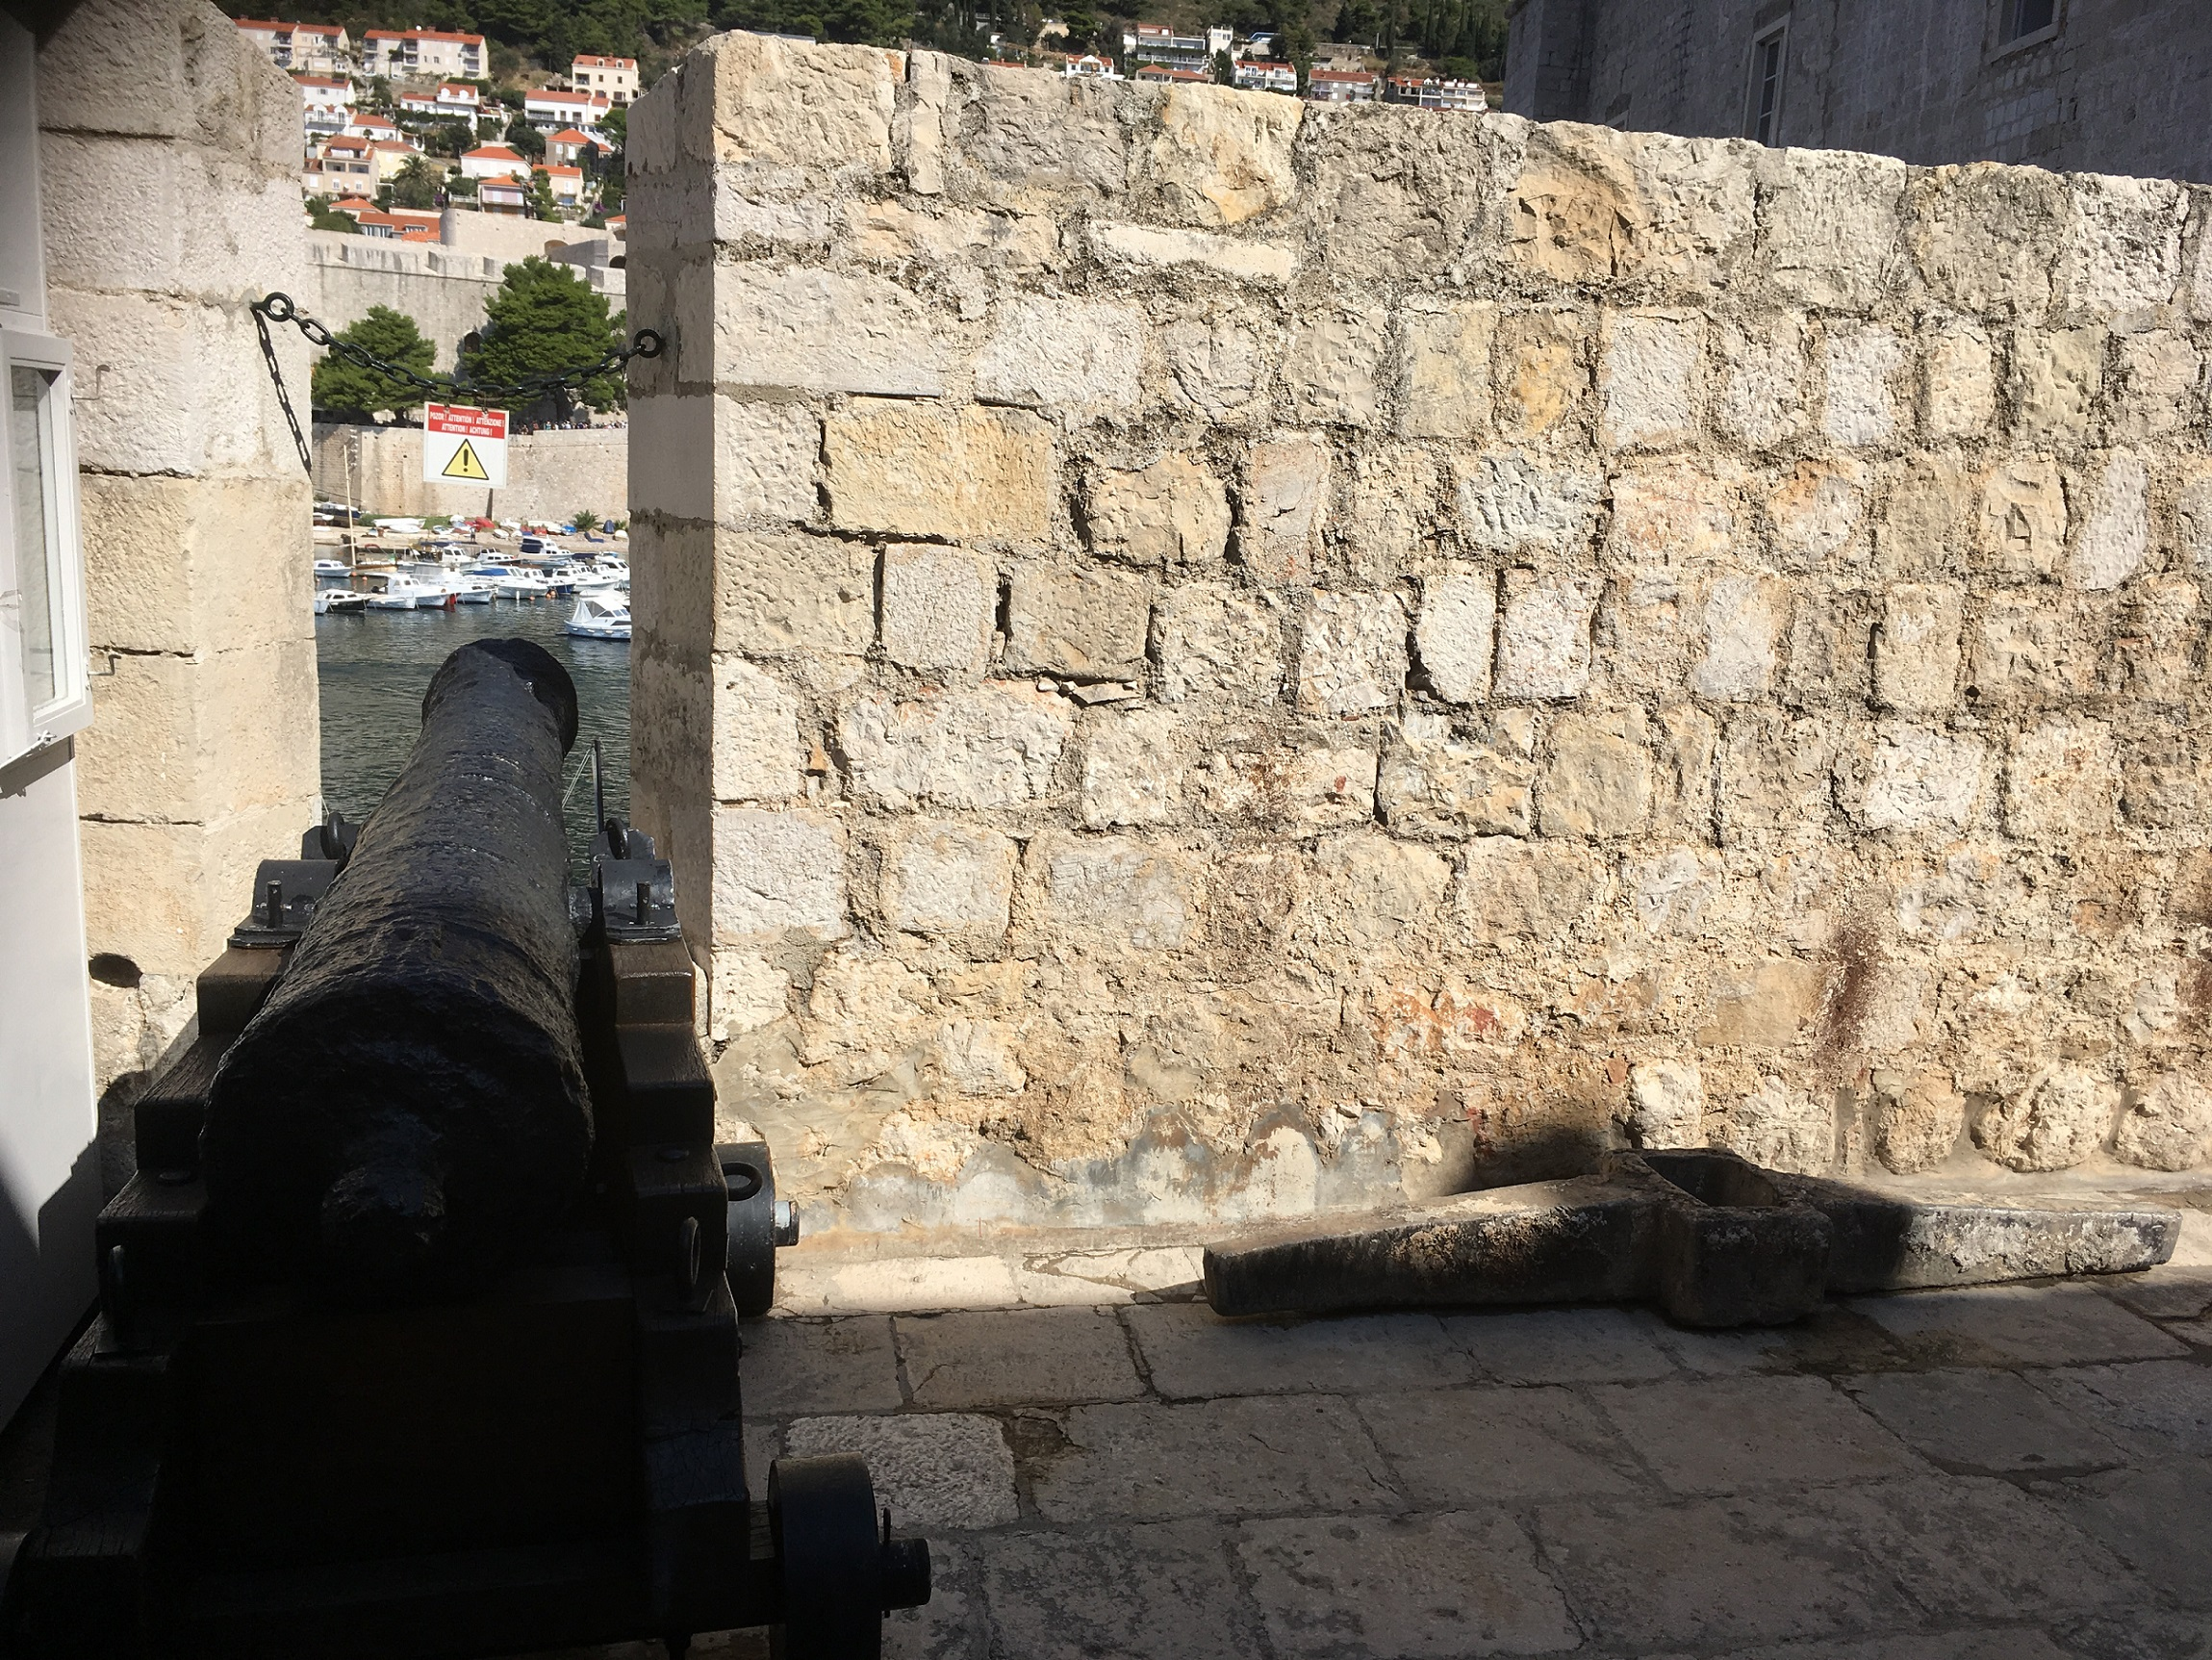 dubrovnik old city cannon